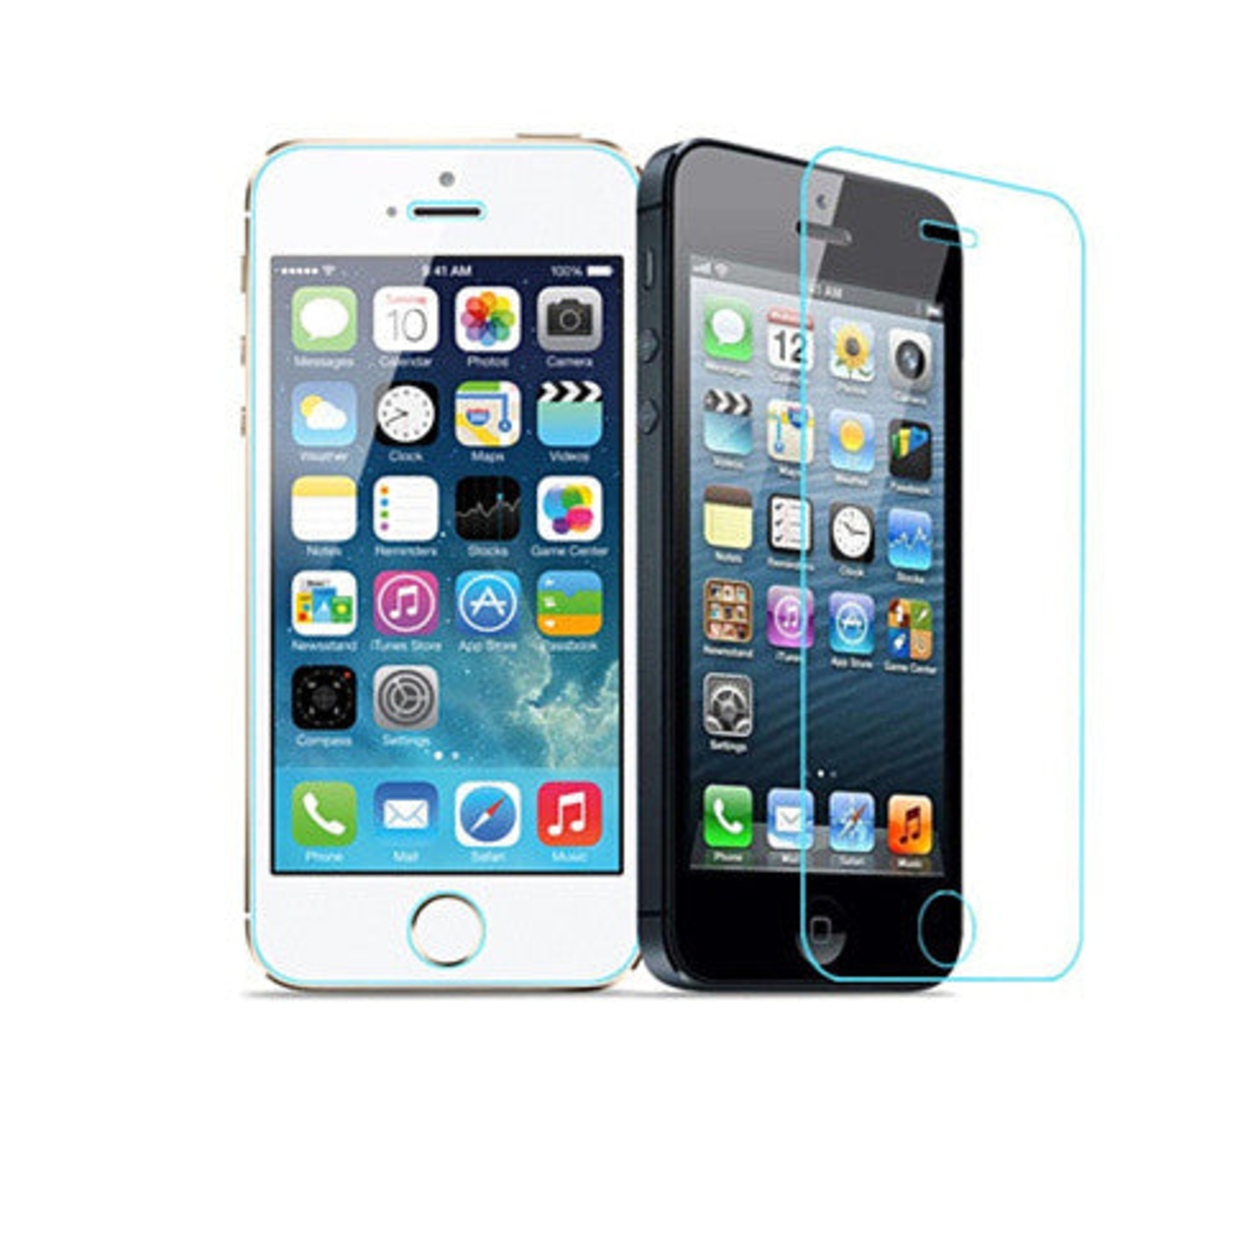 iPhone 4 /4s & 5/5s /5c Glass Screen Protector 544419794c3d6f1b1600069a